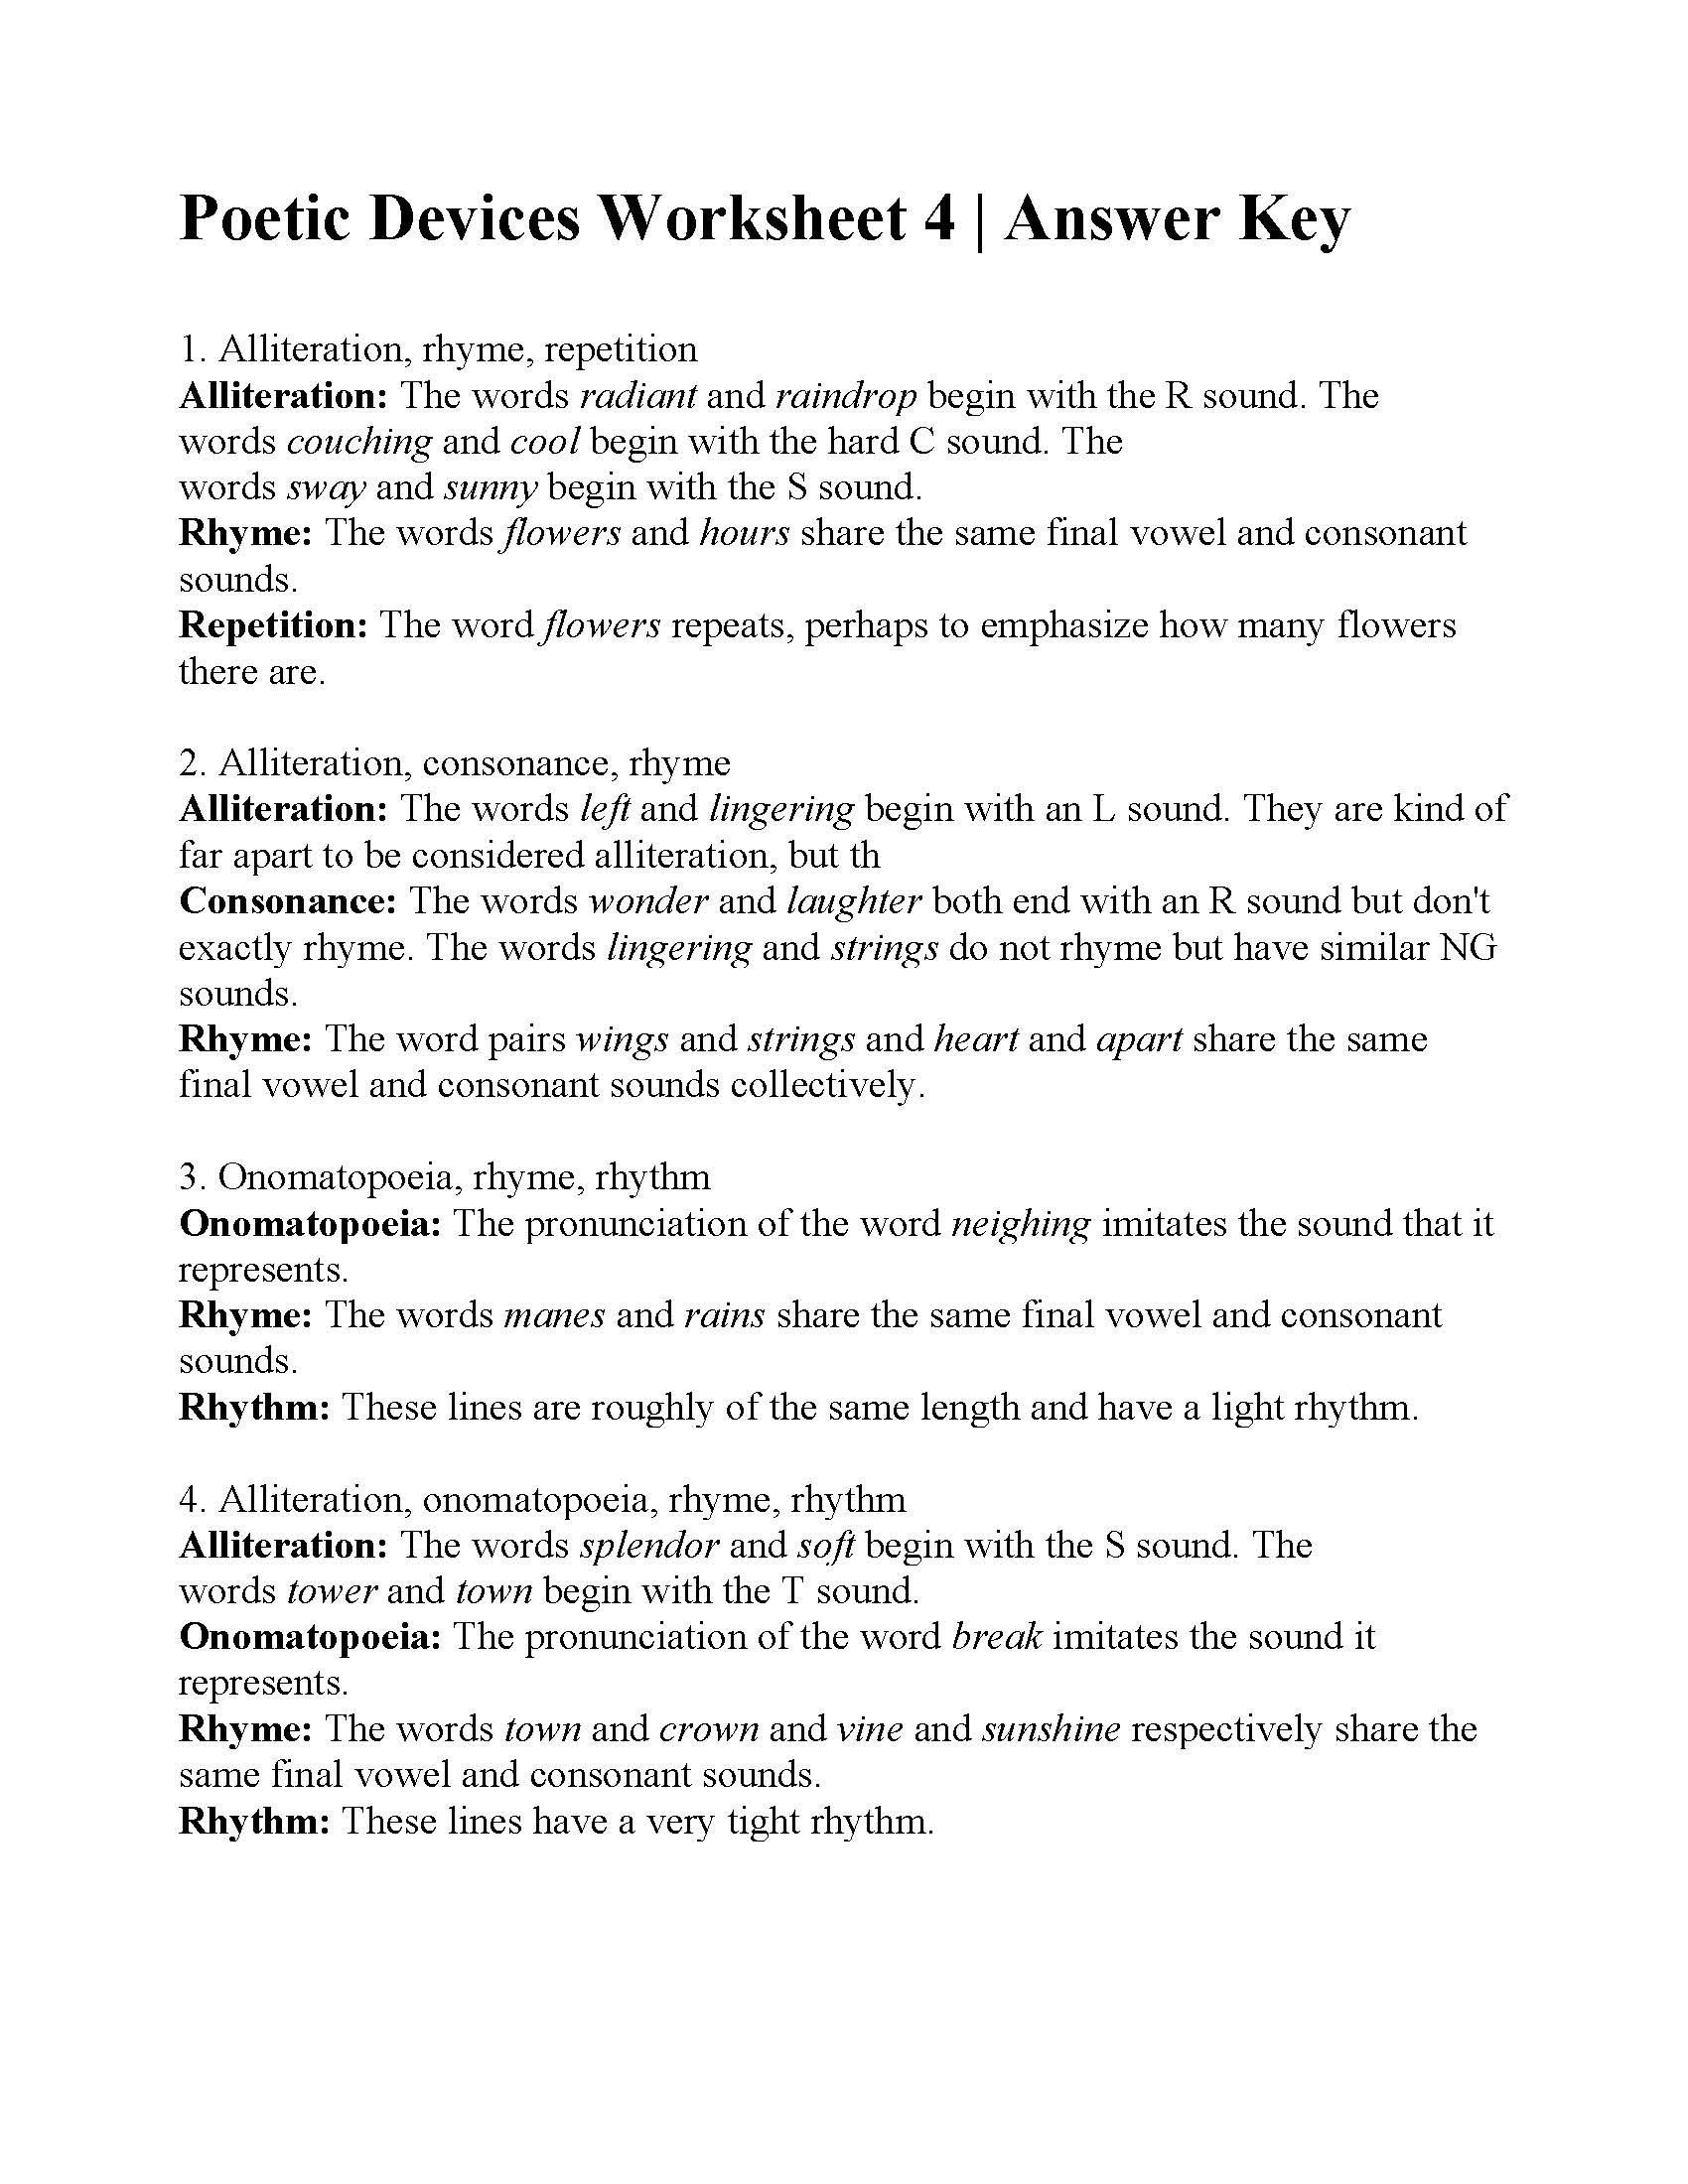 Literary Devices Worksheets Poetic Devices Worksheet 4